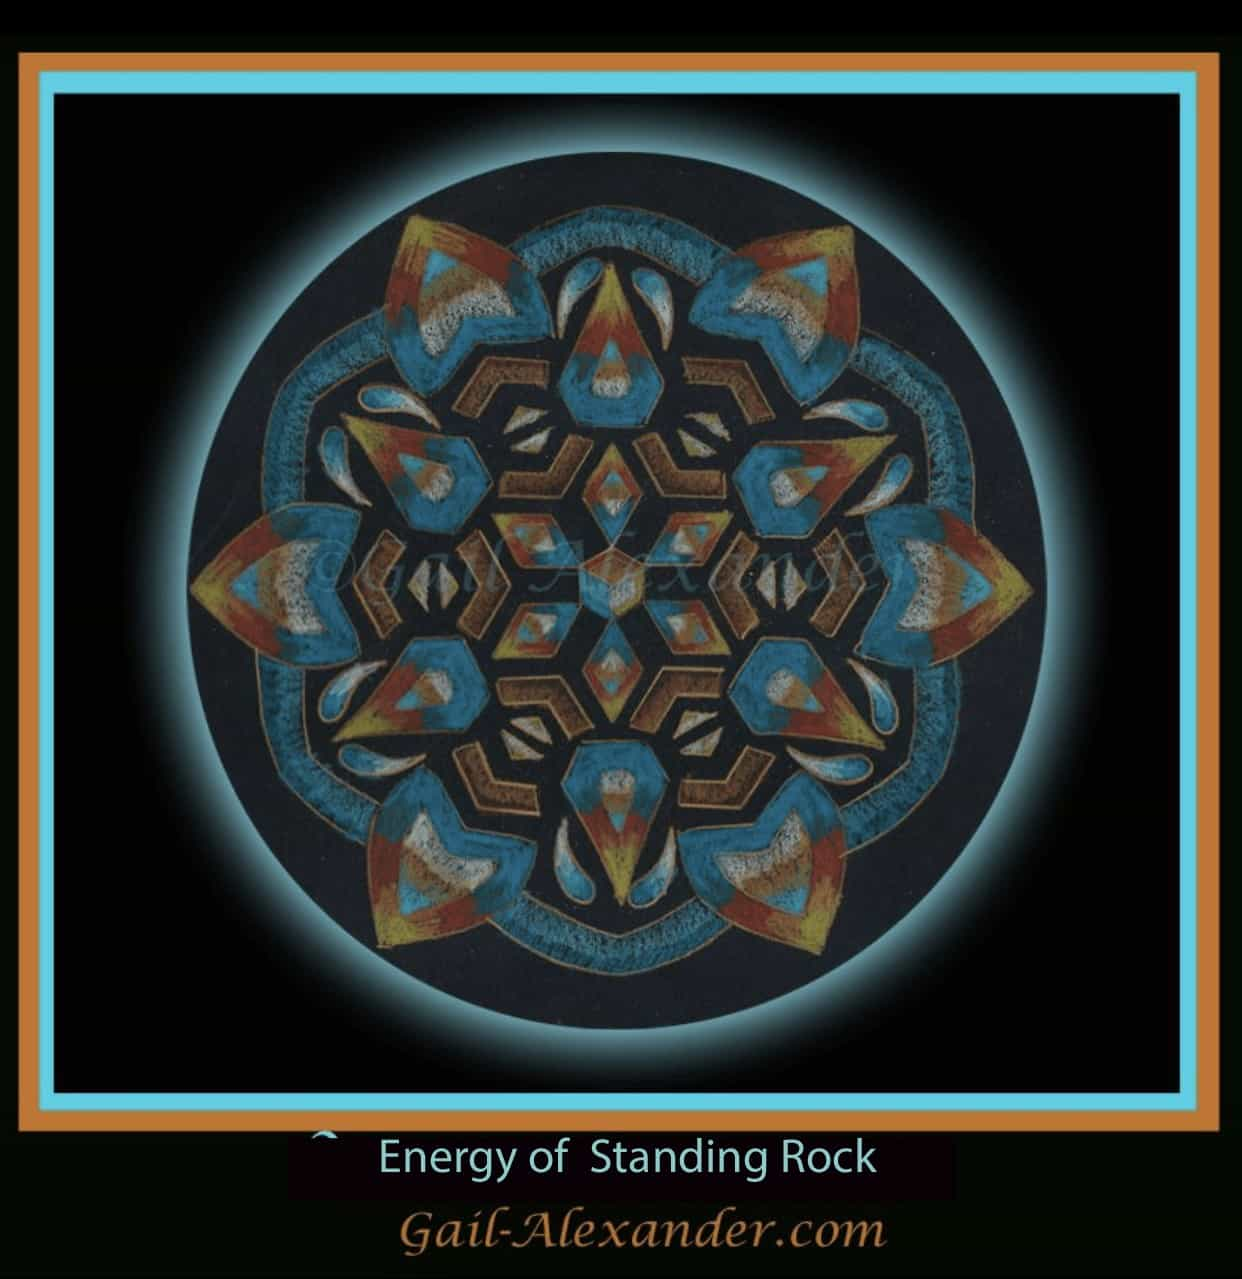 Image created for the energy of Standing Rock. . . They need our help right now. Energy of standing